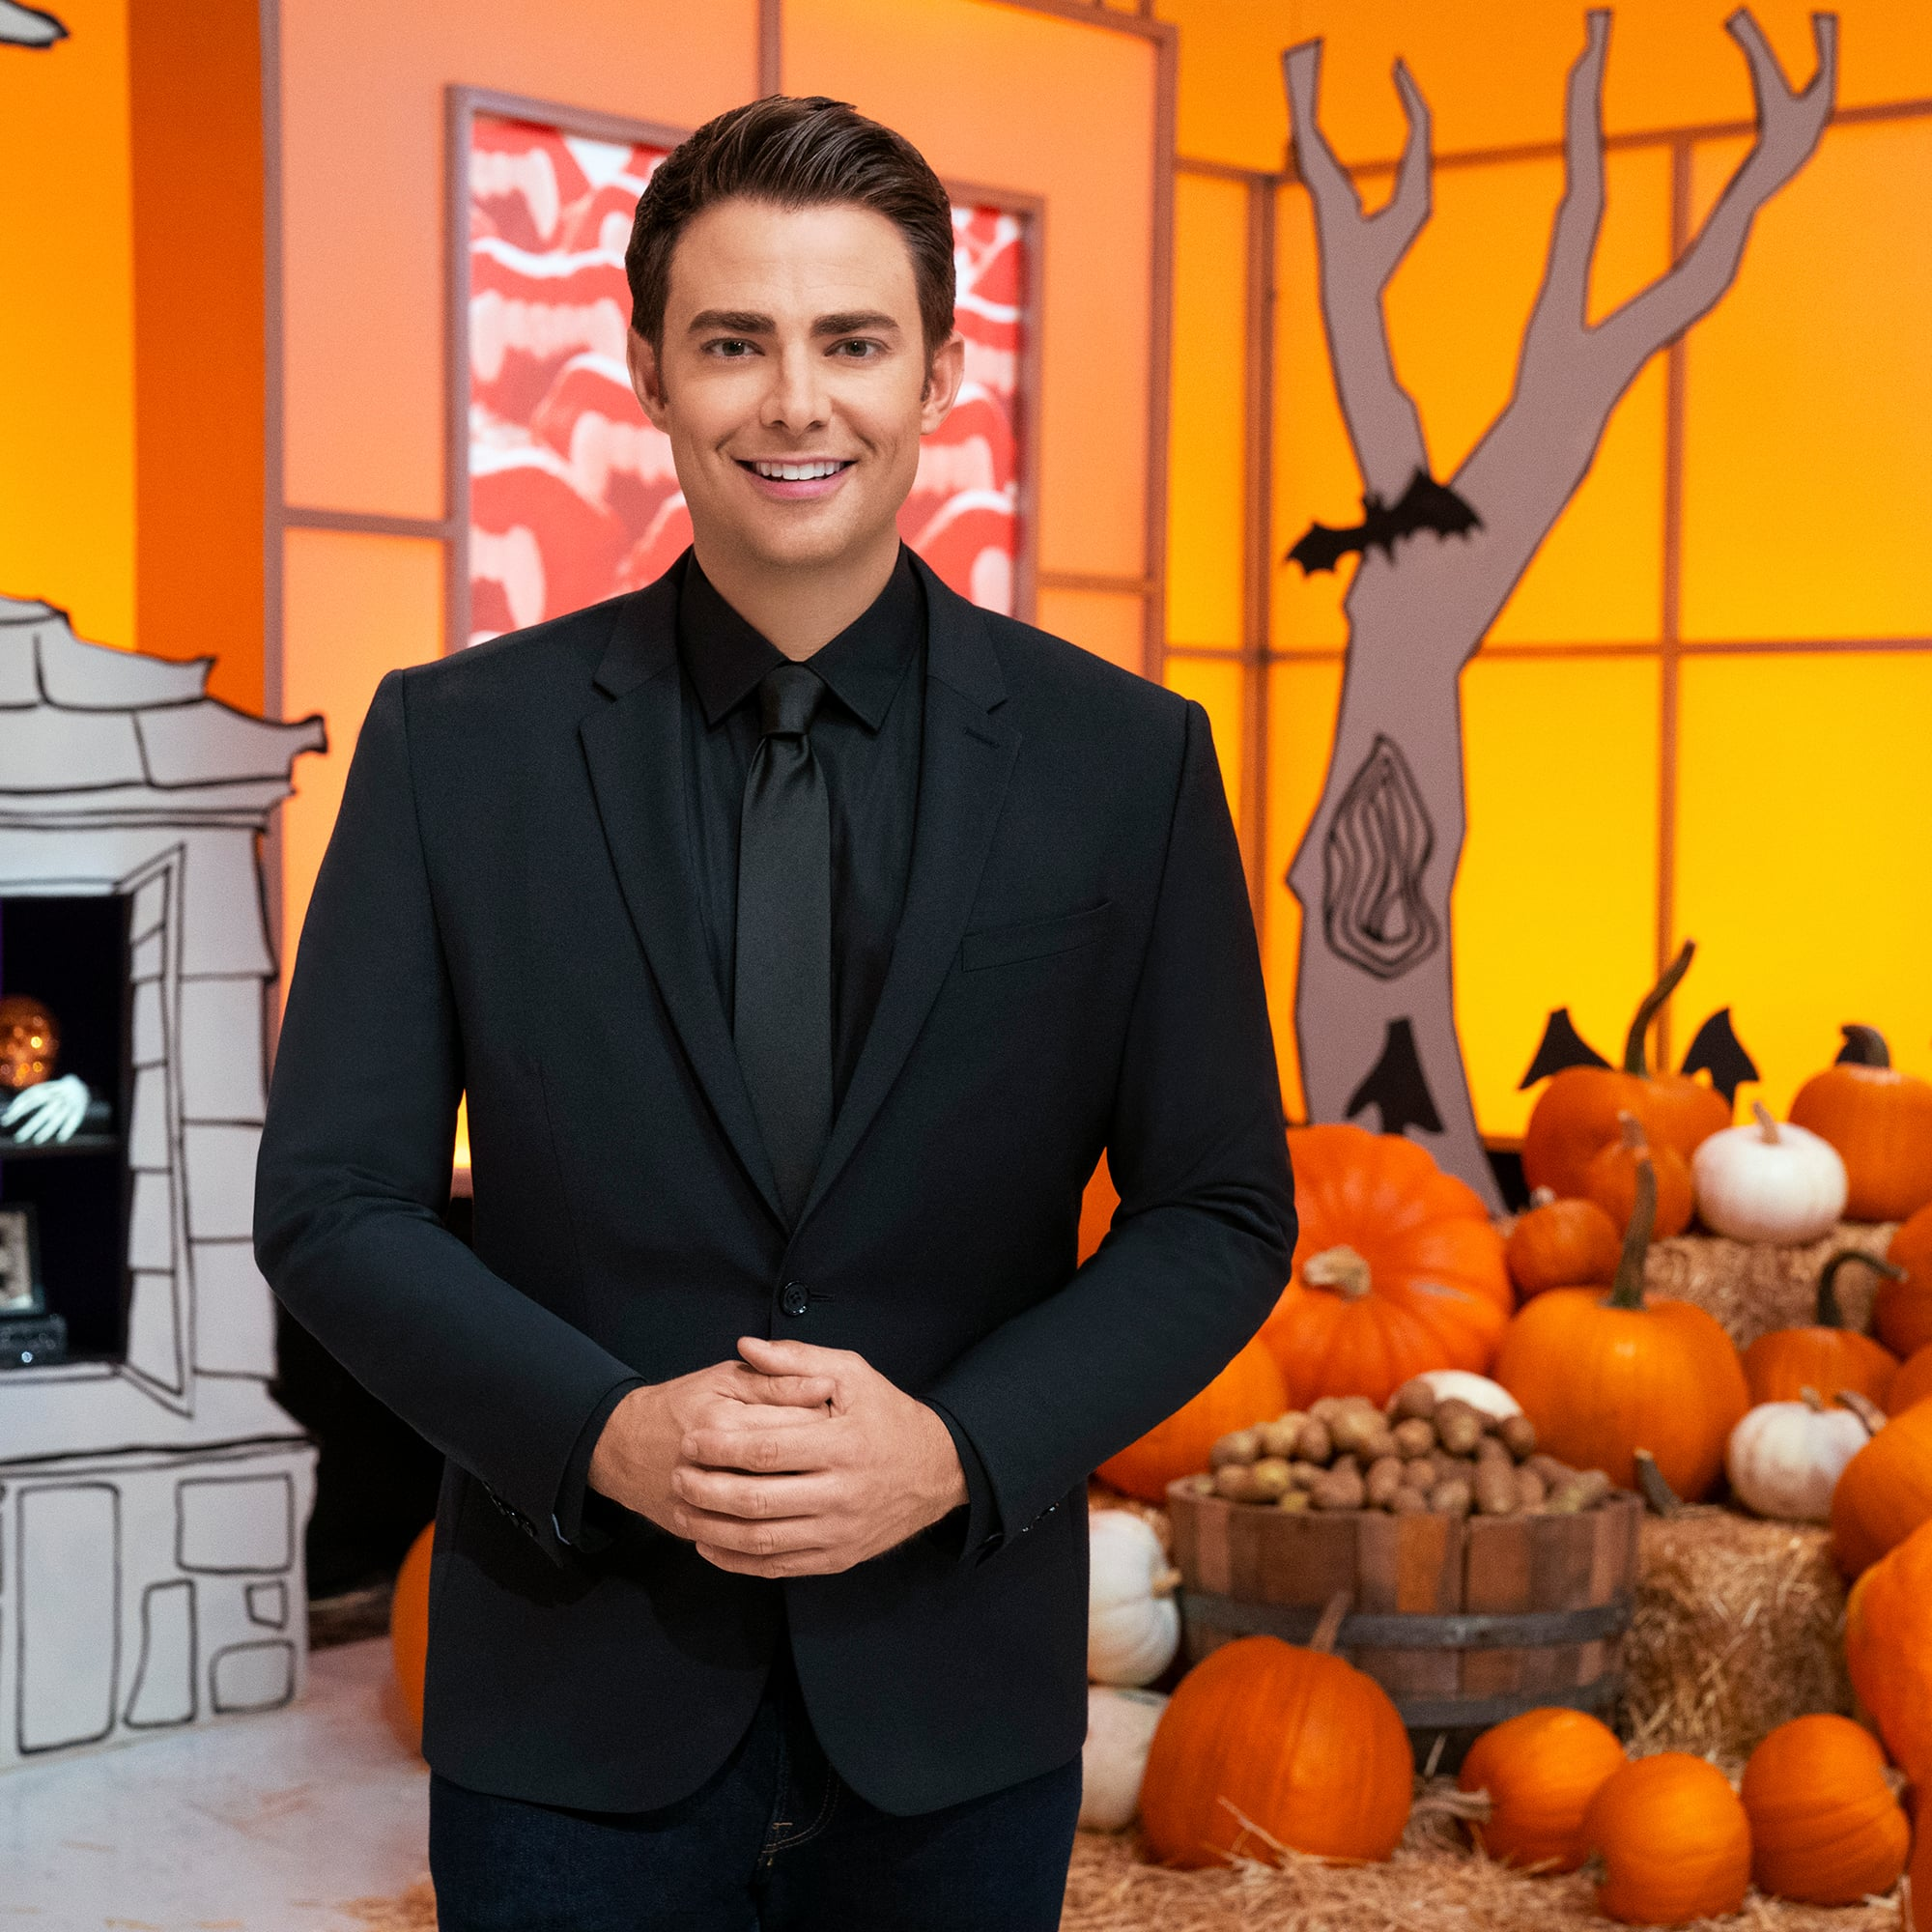 When Do Halloween Shows Start 2020 Food Network Halloween Shows 2020 | POPSUGAR Food